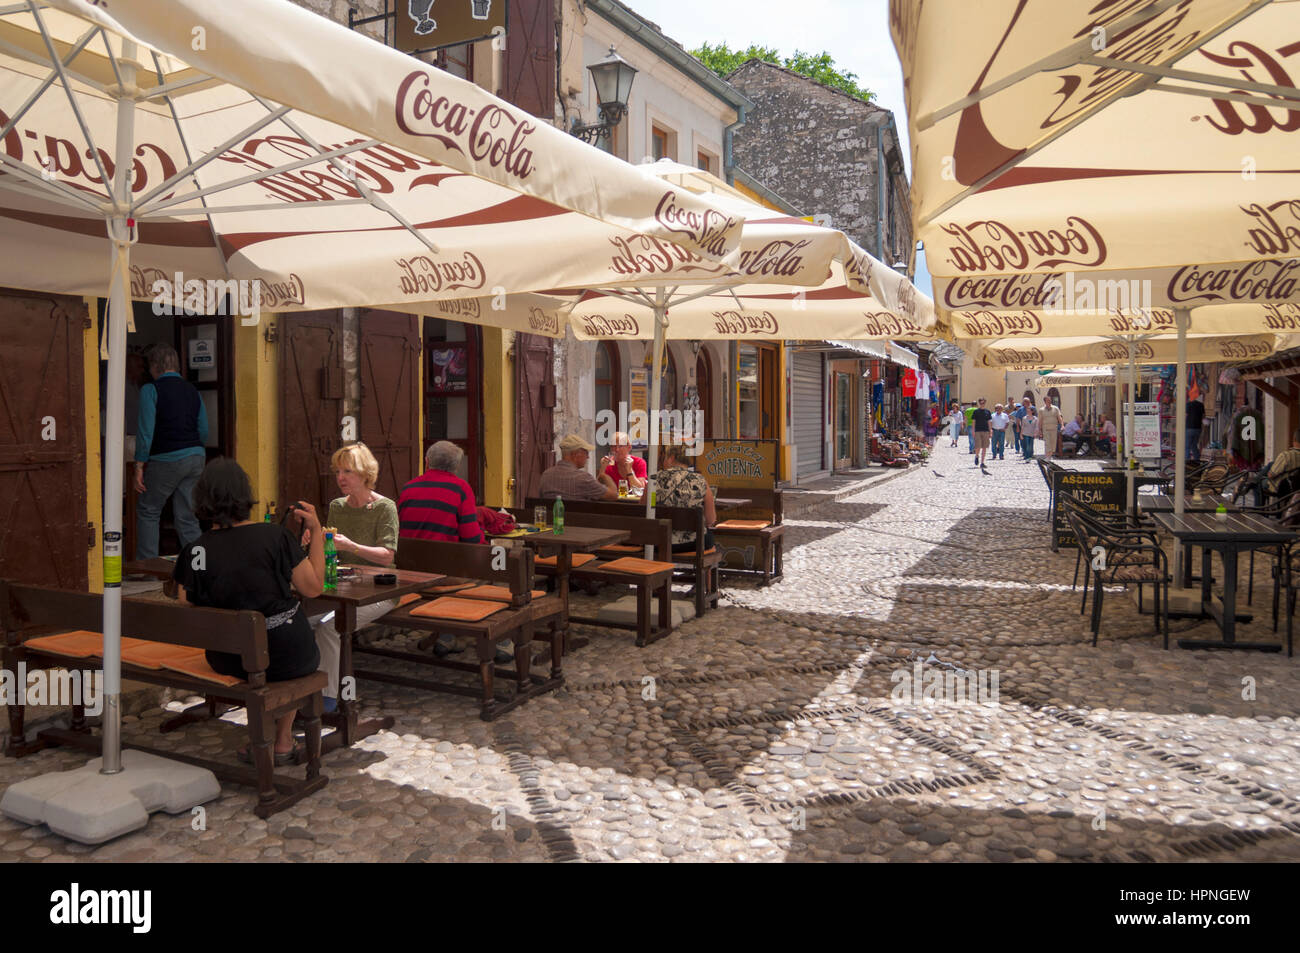 Old town Mostar cafes and tourists, Bosnia Herzegovina - Stock Image